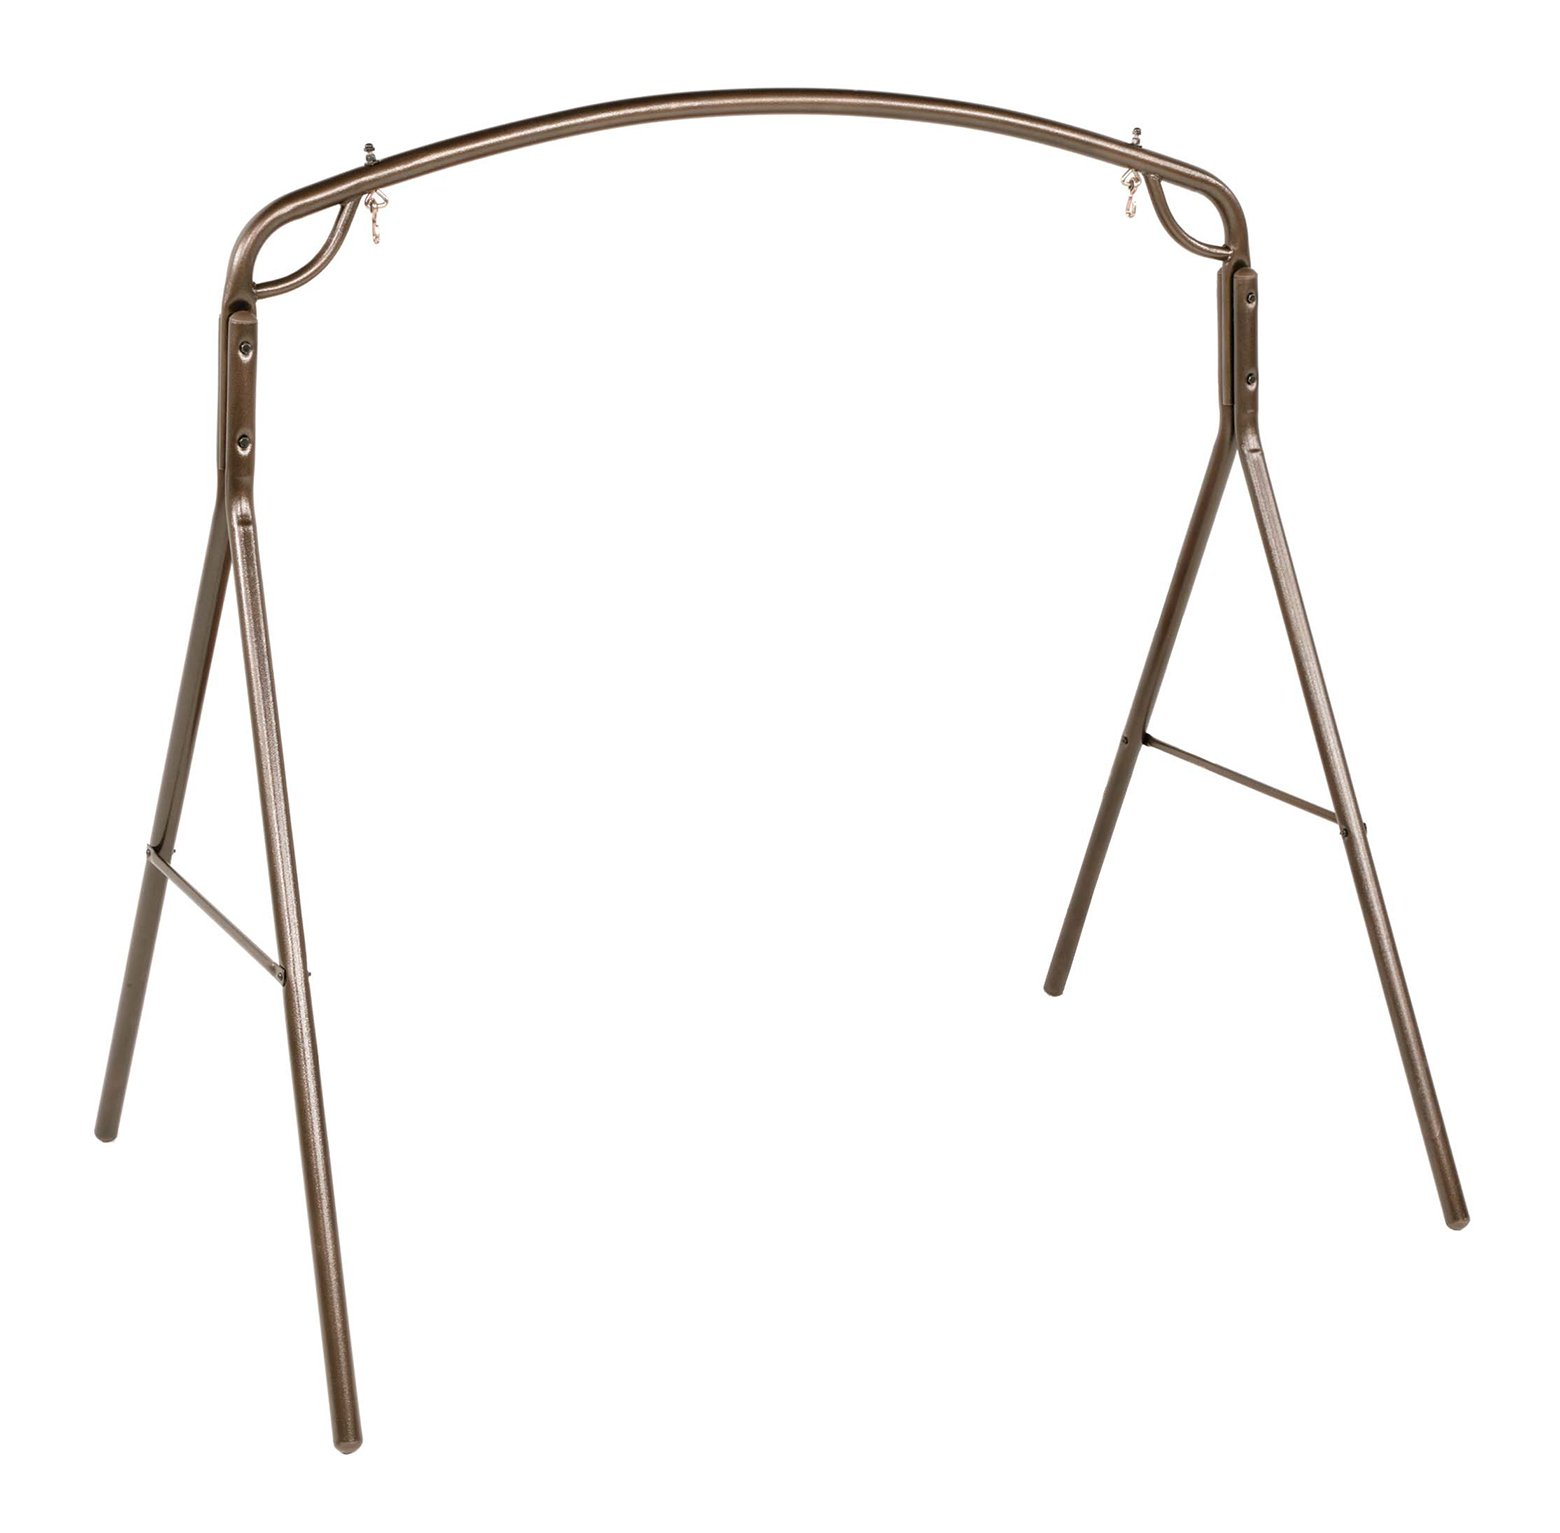 Jack Post Woodlawn Swing Frame in Bronze Finish by Jack Post